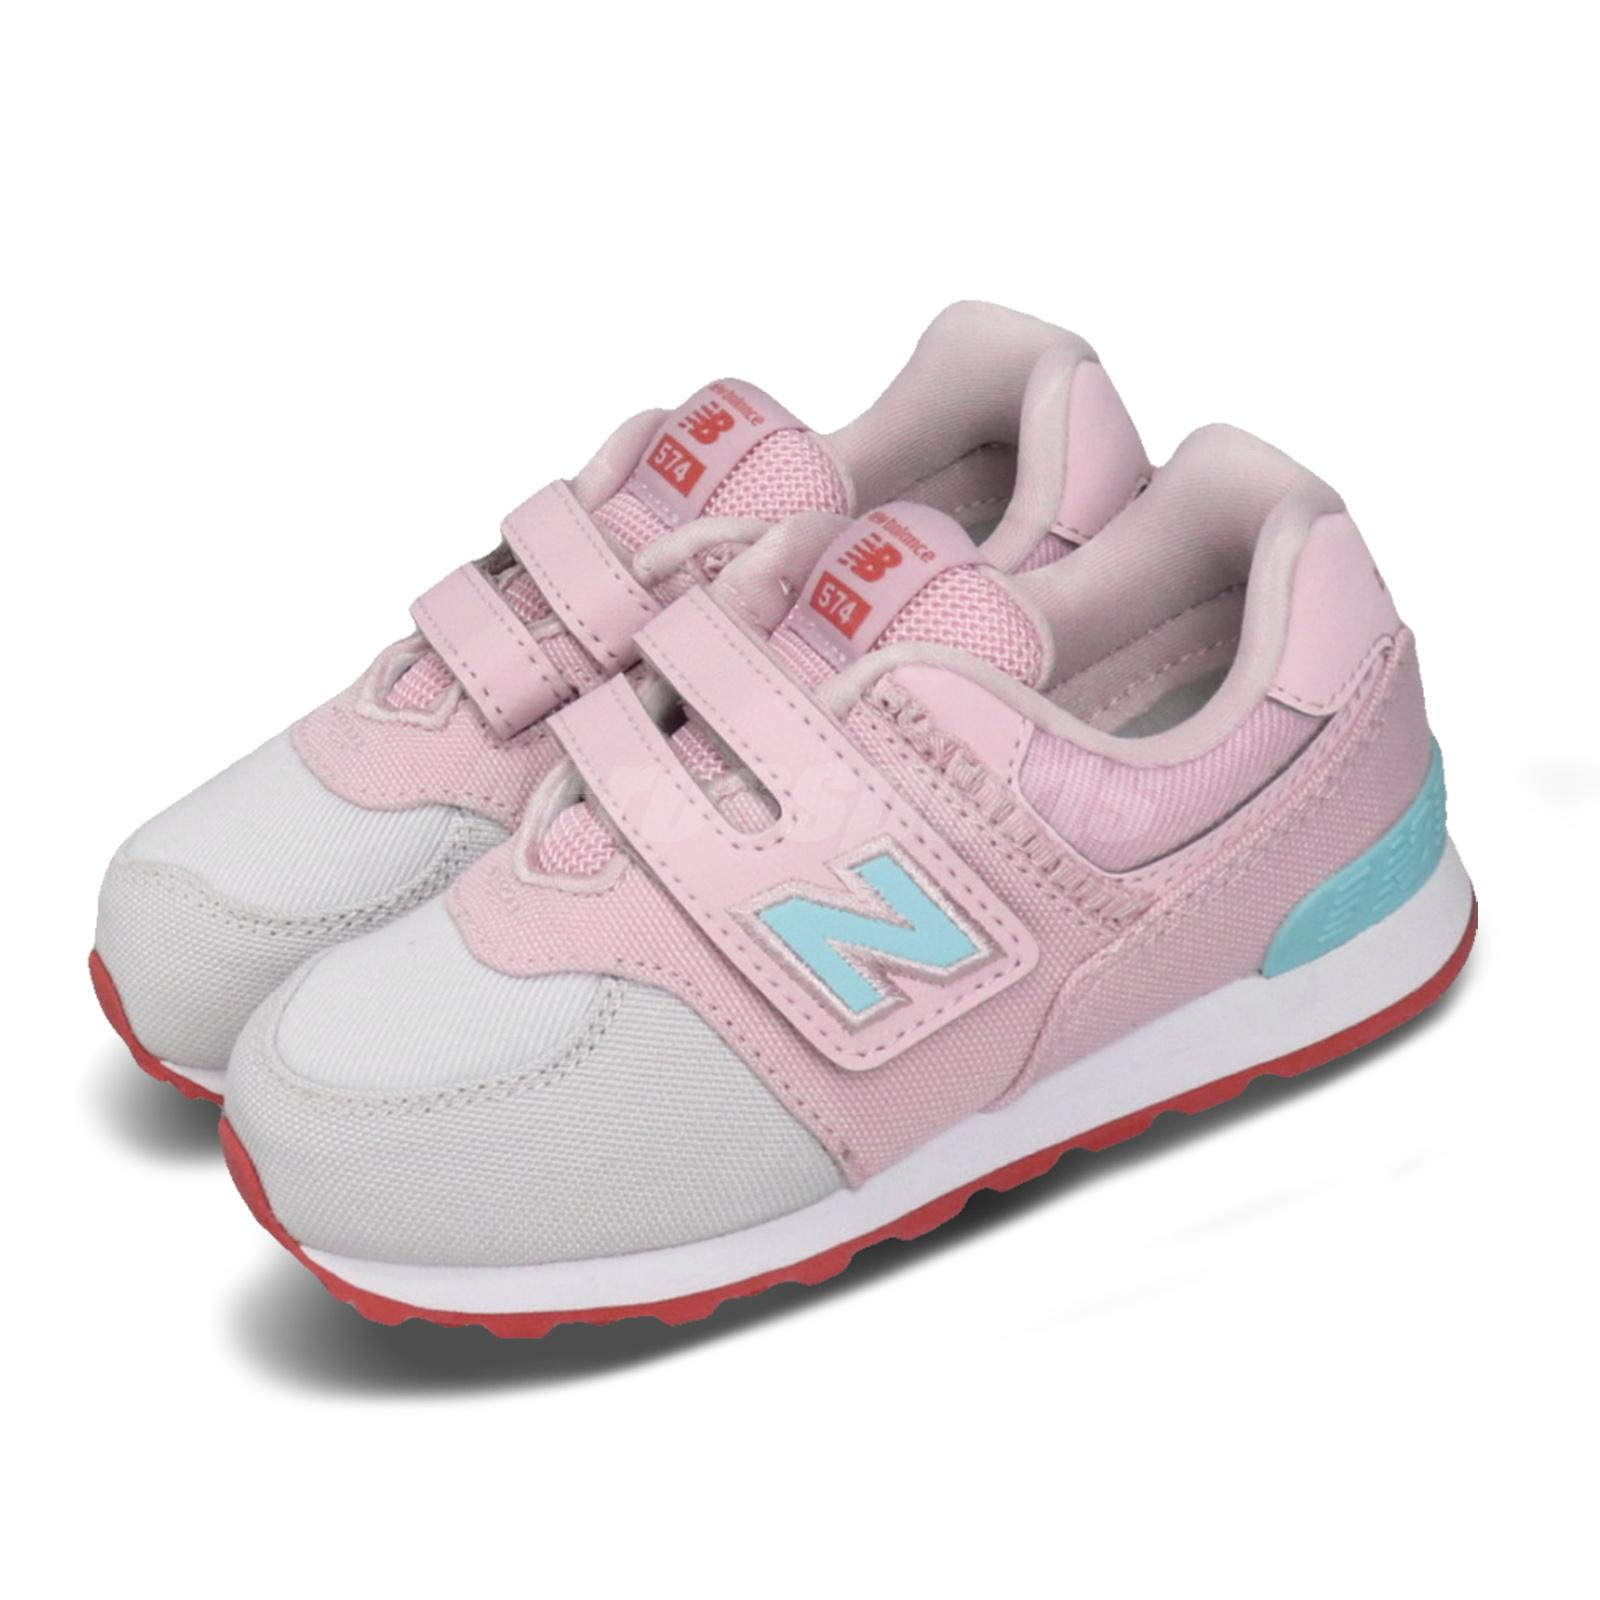 new balance shoes for baby girl - 53